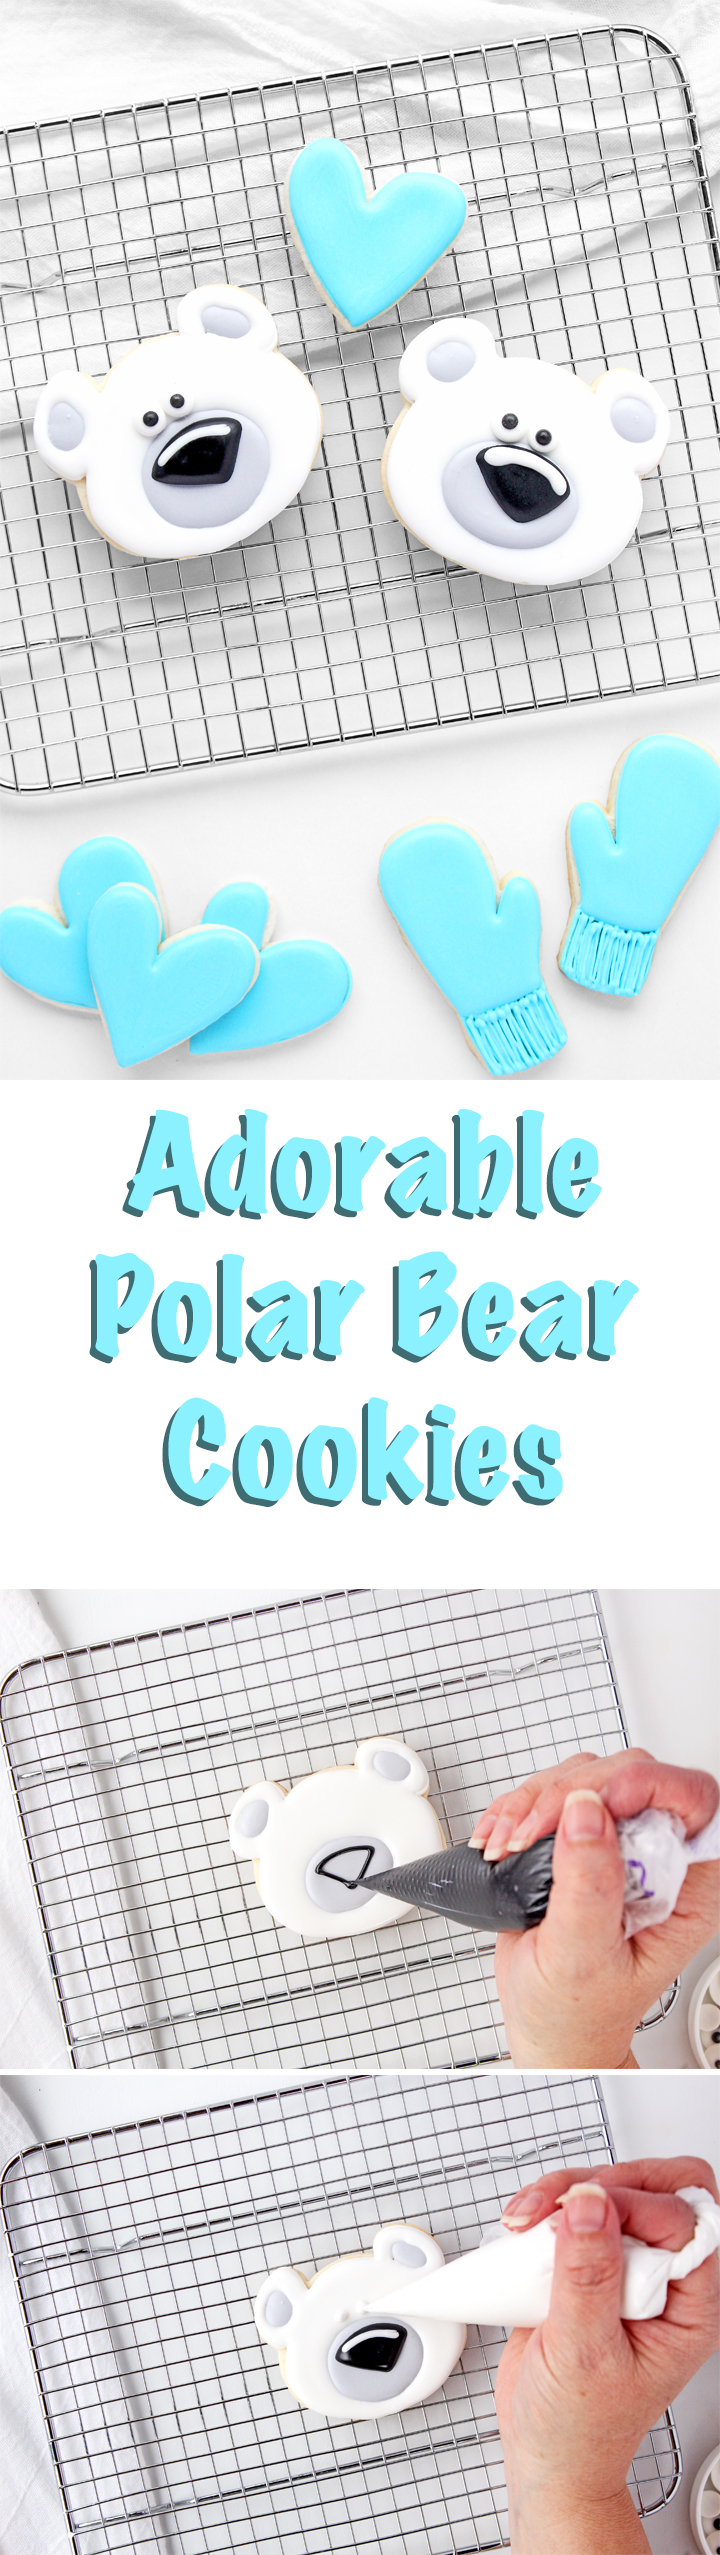 How to Make Adorable Polar Bear Cookies Decorated with Royal Icing | The Bearfoot Baker